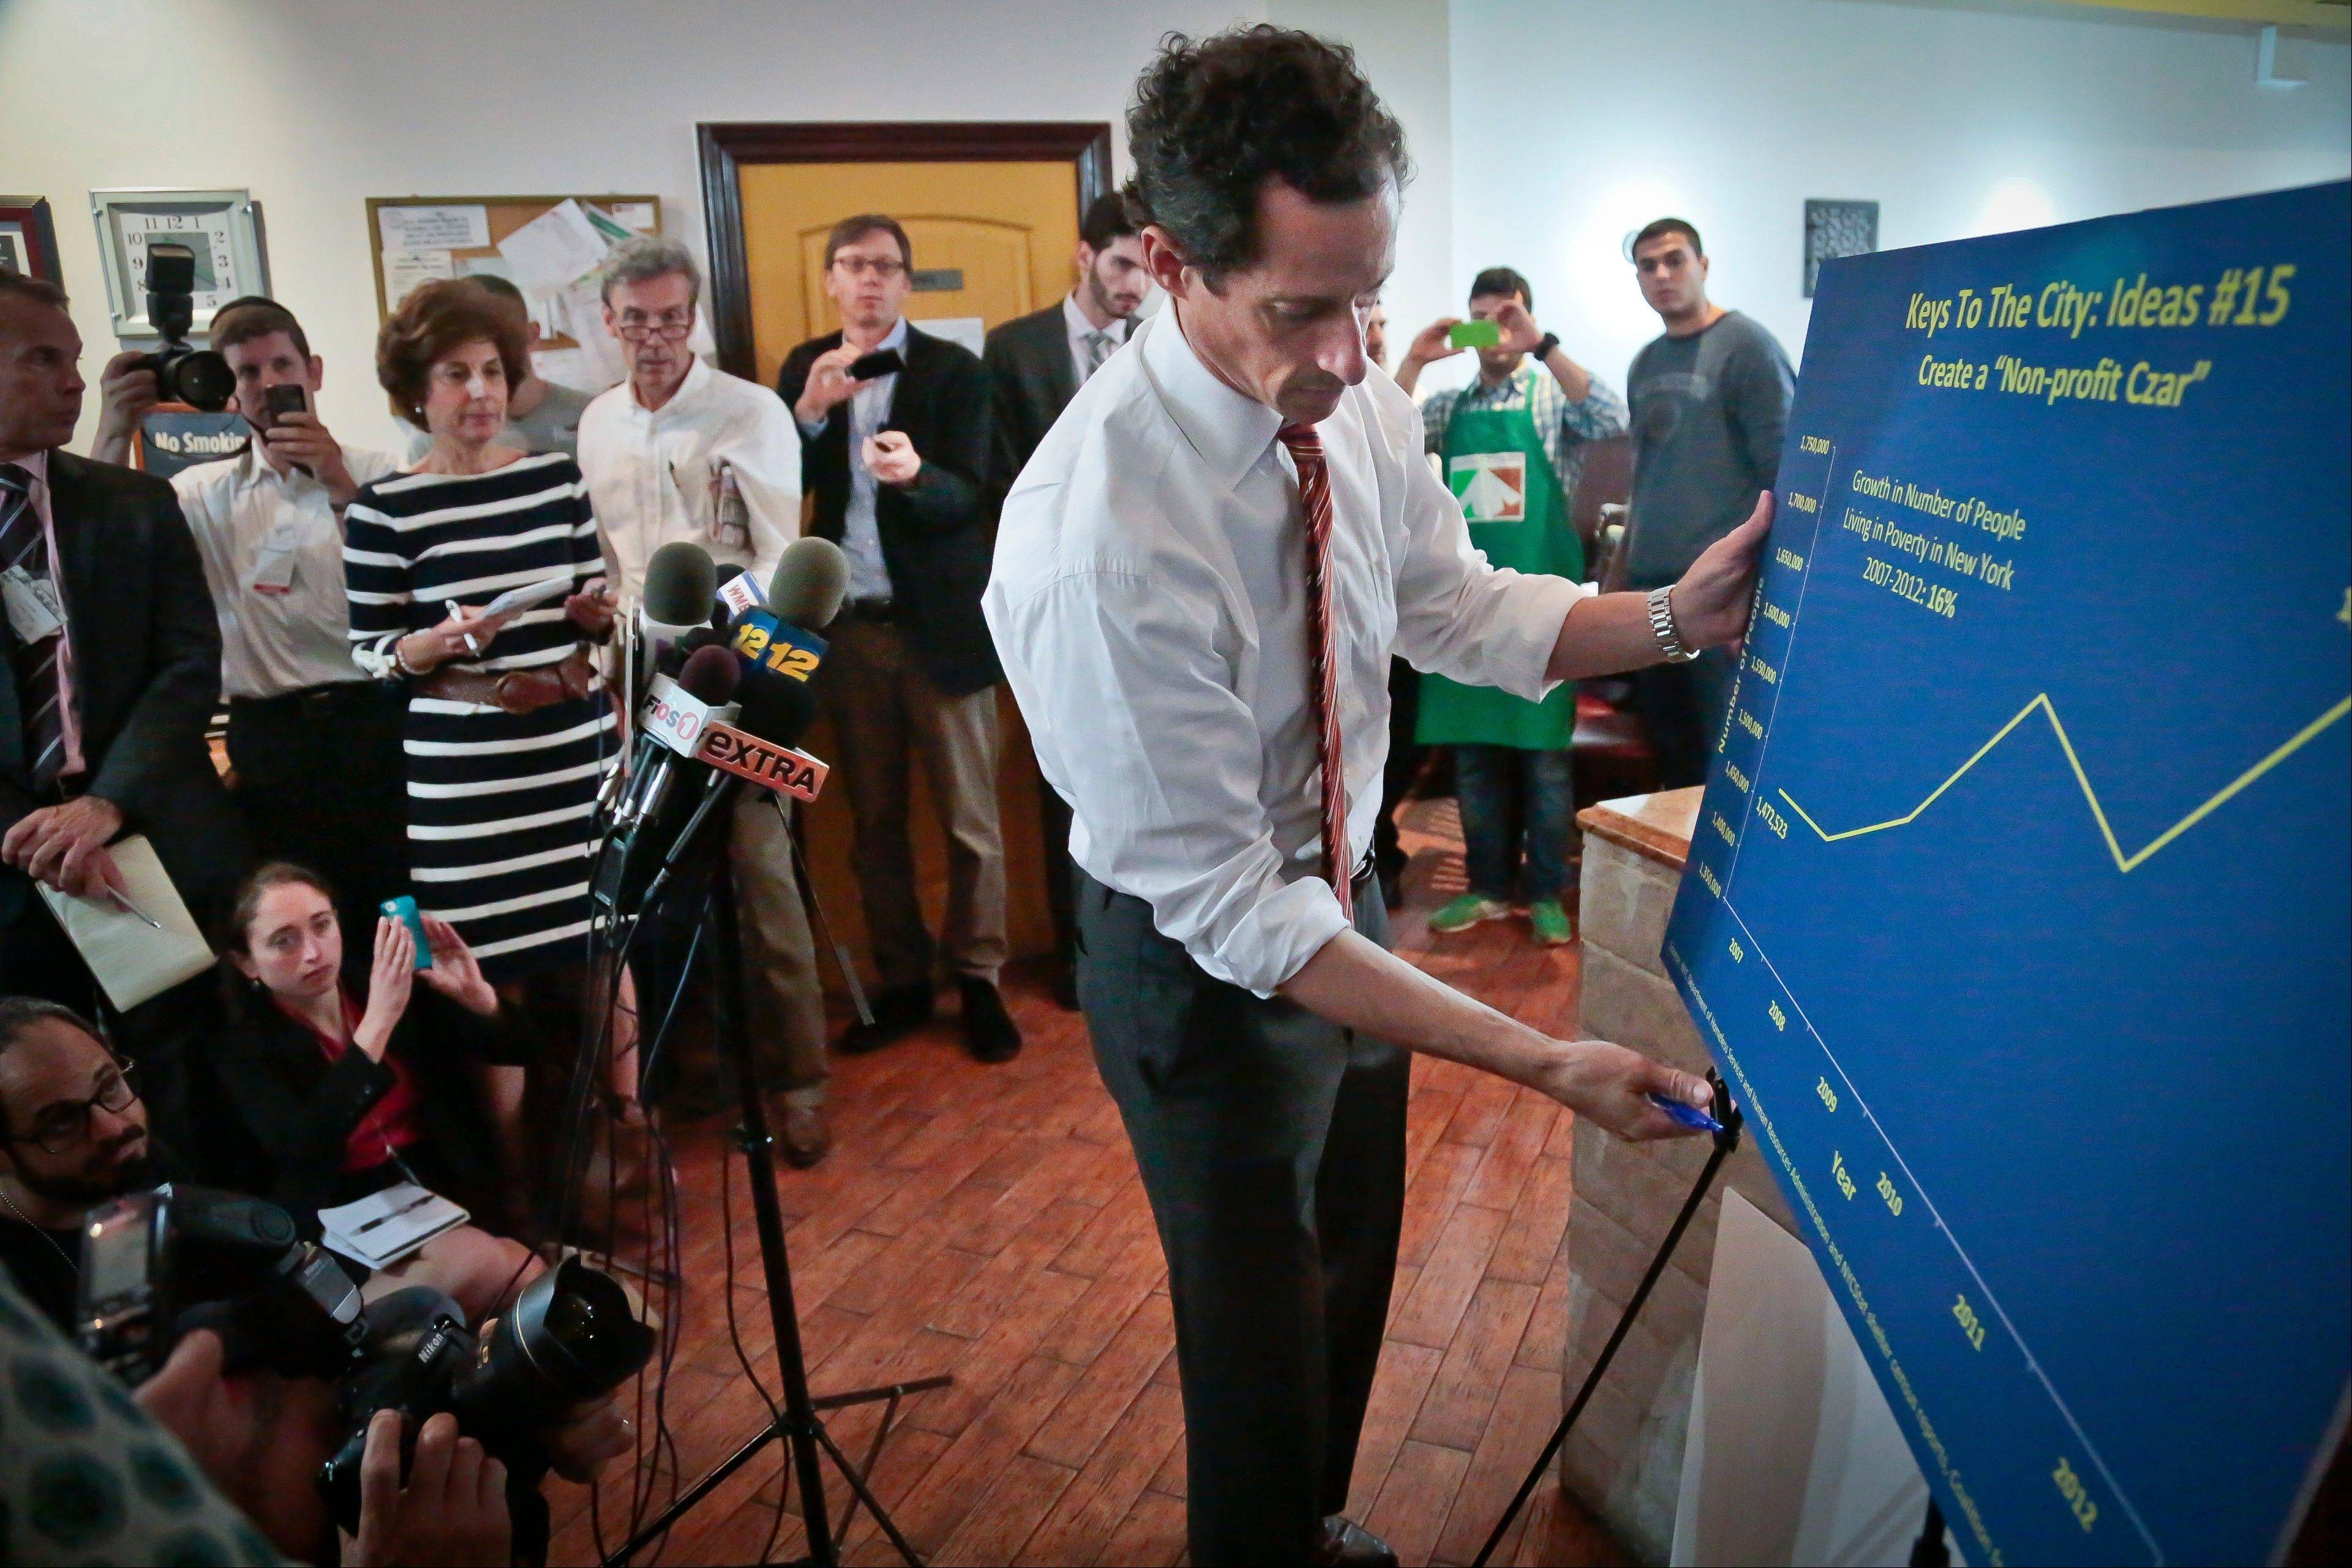 Anthony Weiner, New York mayoral candidate, display a graphic during a press conference on Thursday. A new poll suggests his new sexting scandal is taking a toll on his mayoral prospects.